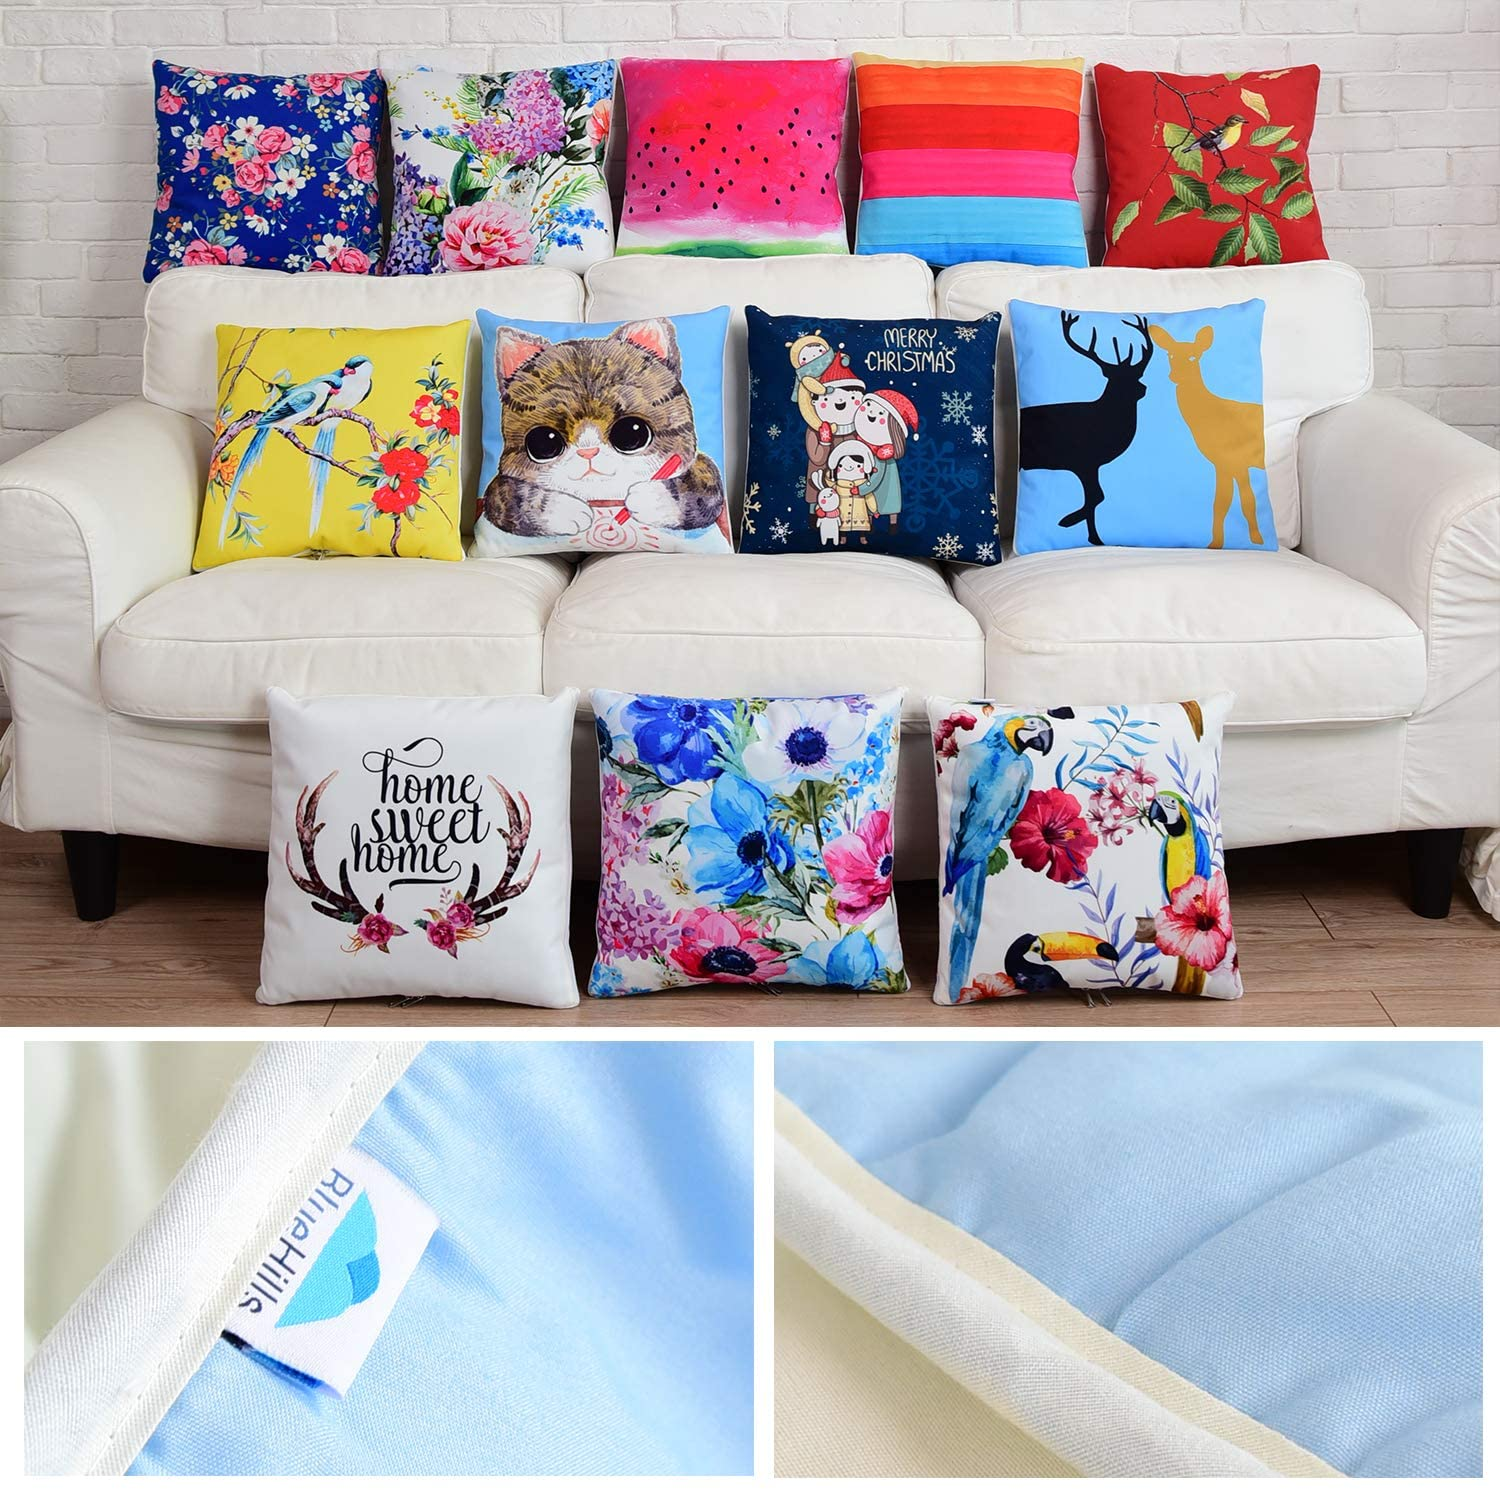 Decorative Couch Pillow Blanket Throw Quilt for Home, Travel and Camping - Convertible